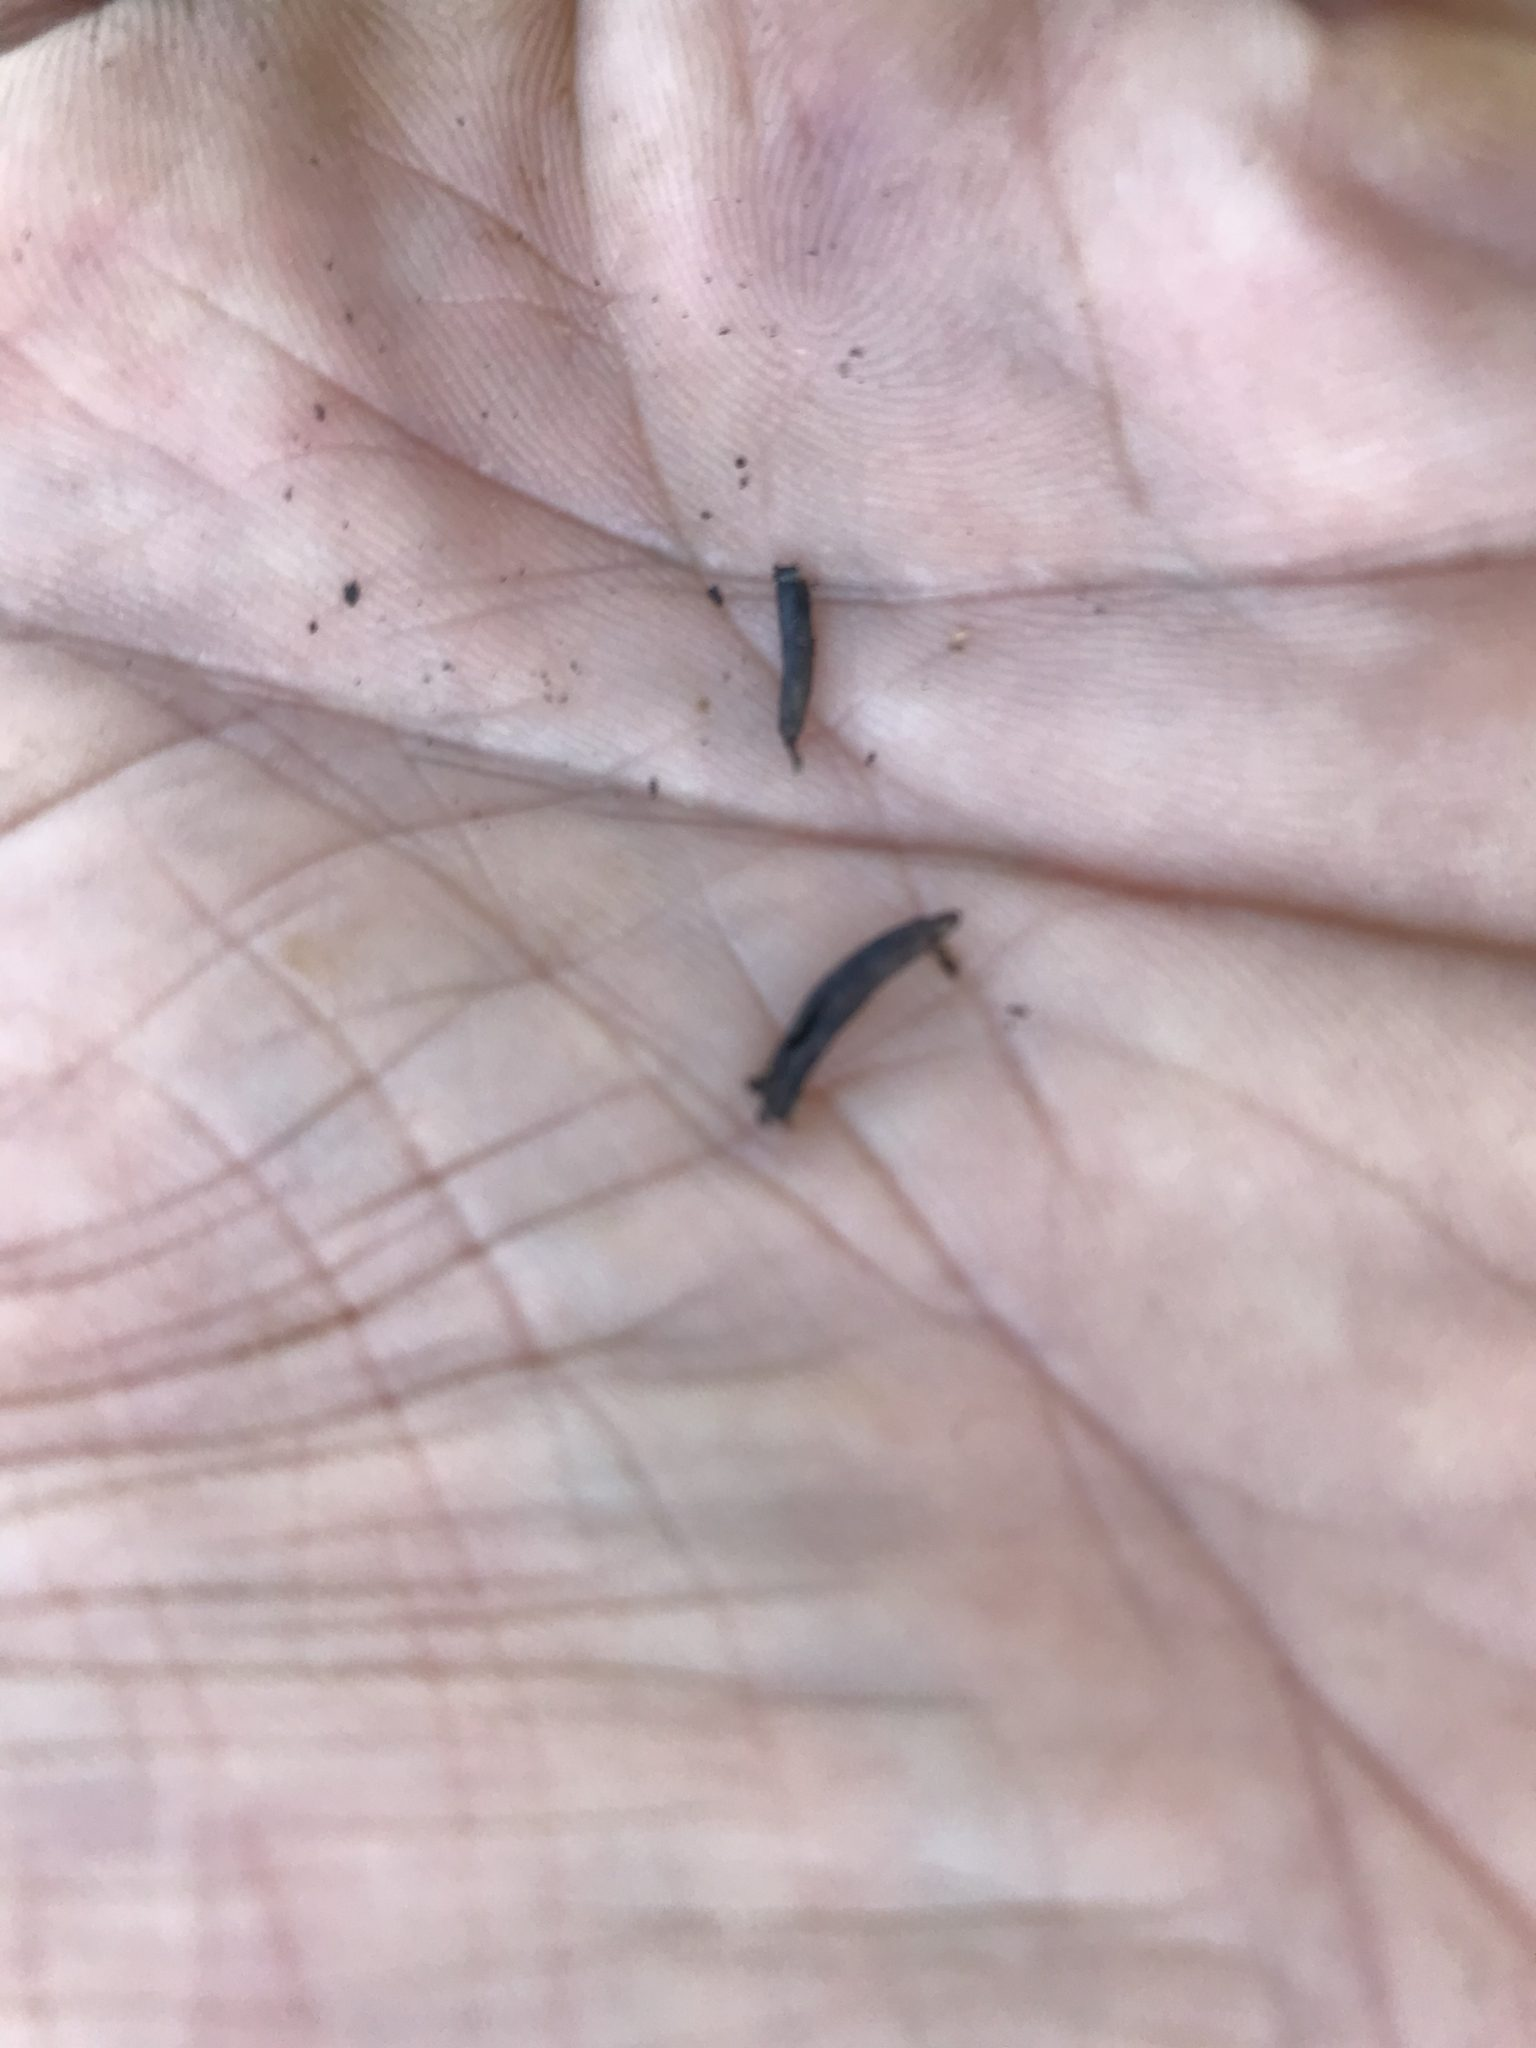 Two individual ergot bodies (sclerotia) from a grass seed head.